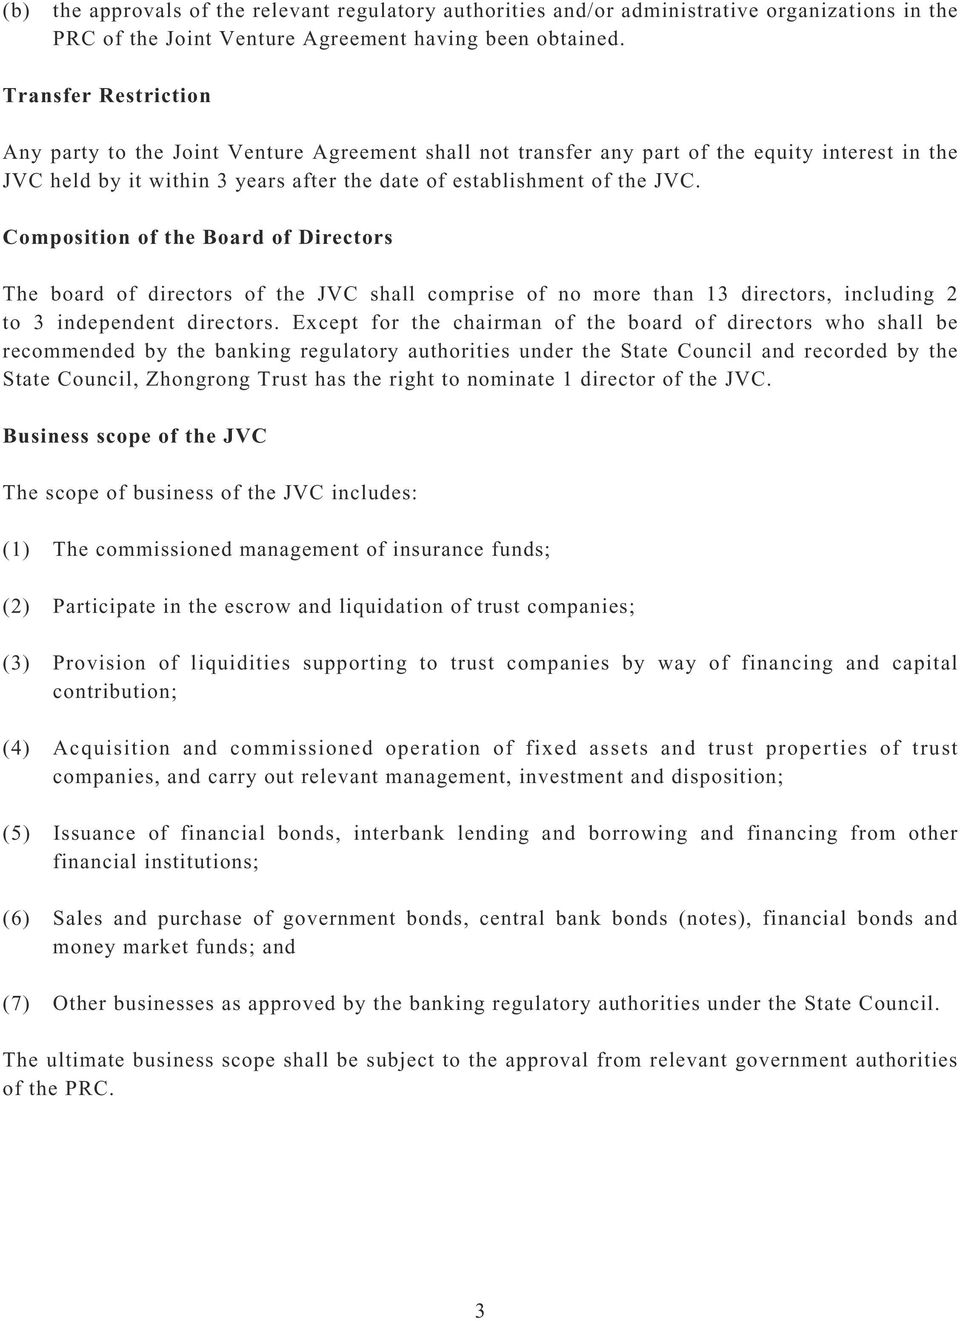 Composition of the Board of Directors The board of directors of the JVC shall comprise of no more than 13 directors, including 2 to 3 independent directors.